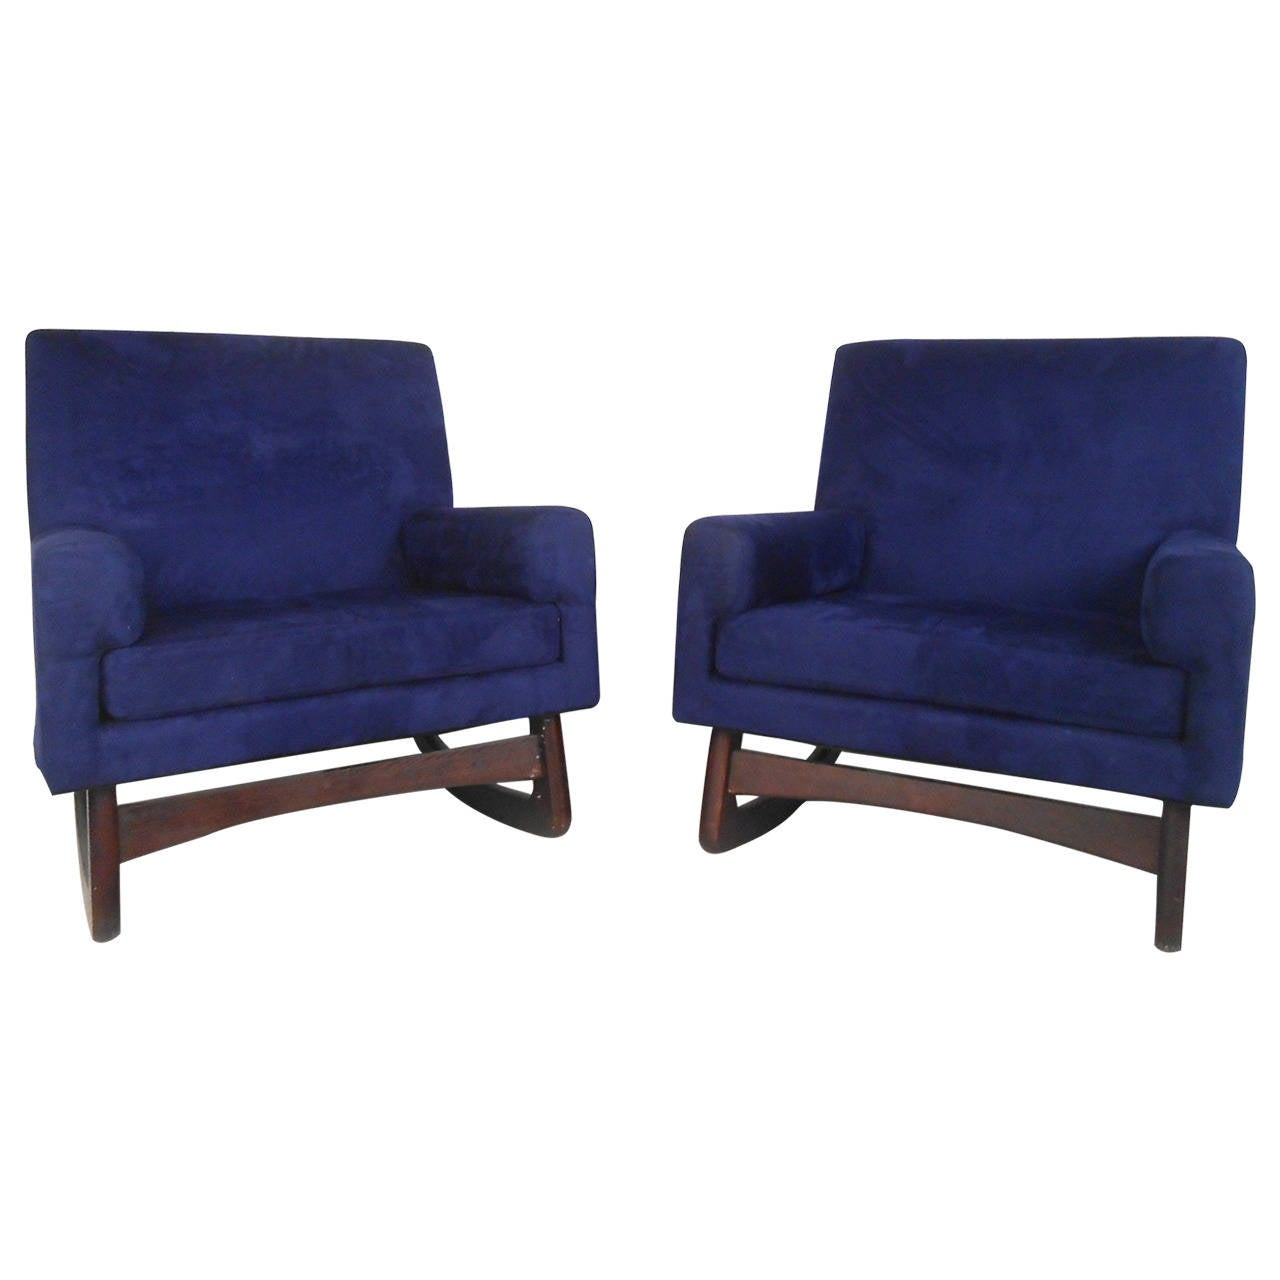 Unique Pair of Mid-Century Modern Suede Rocking Chairs